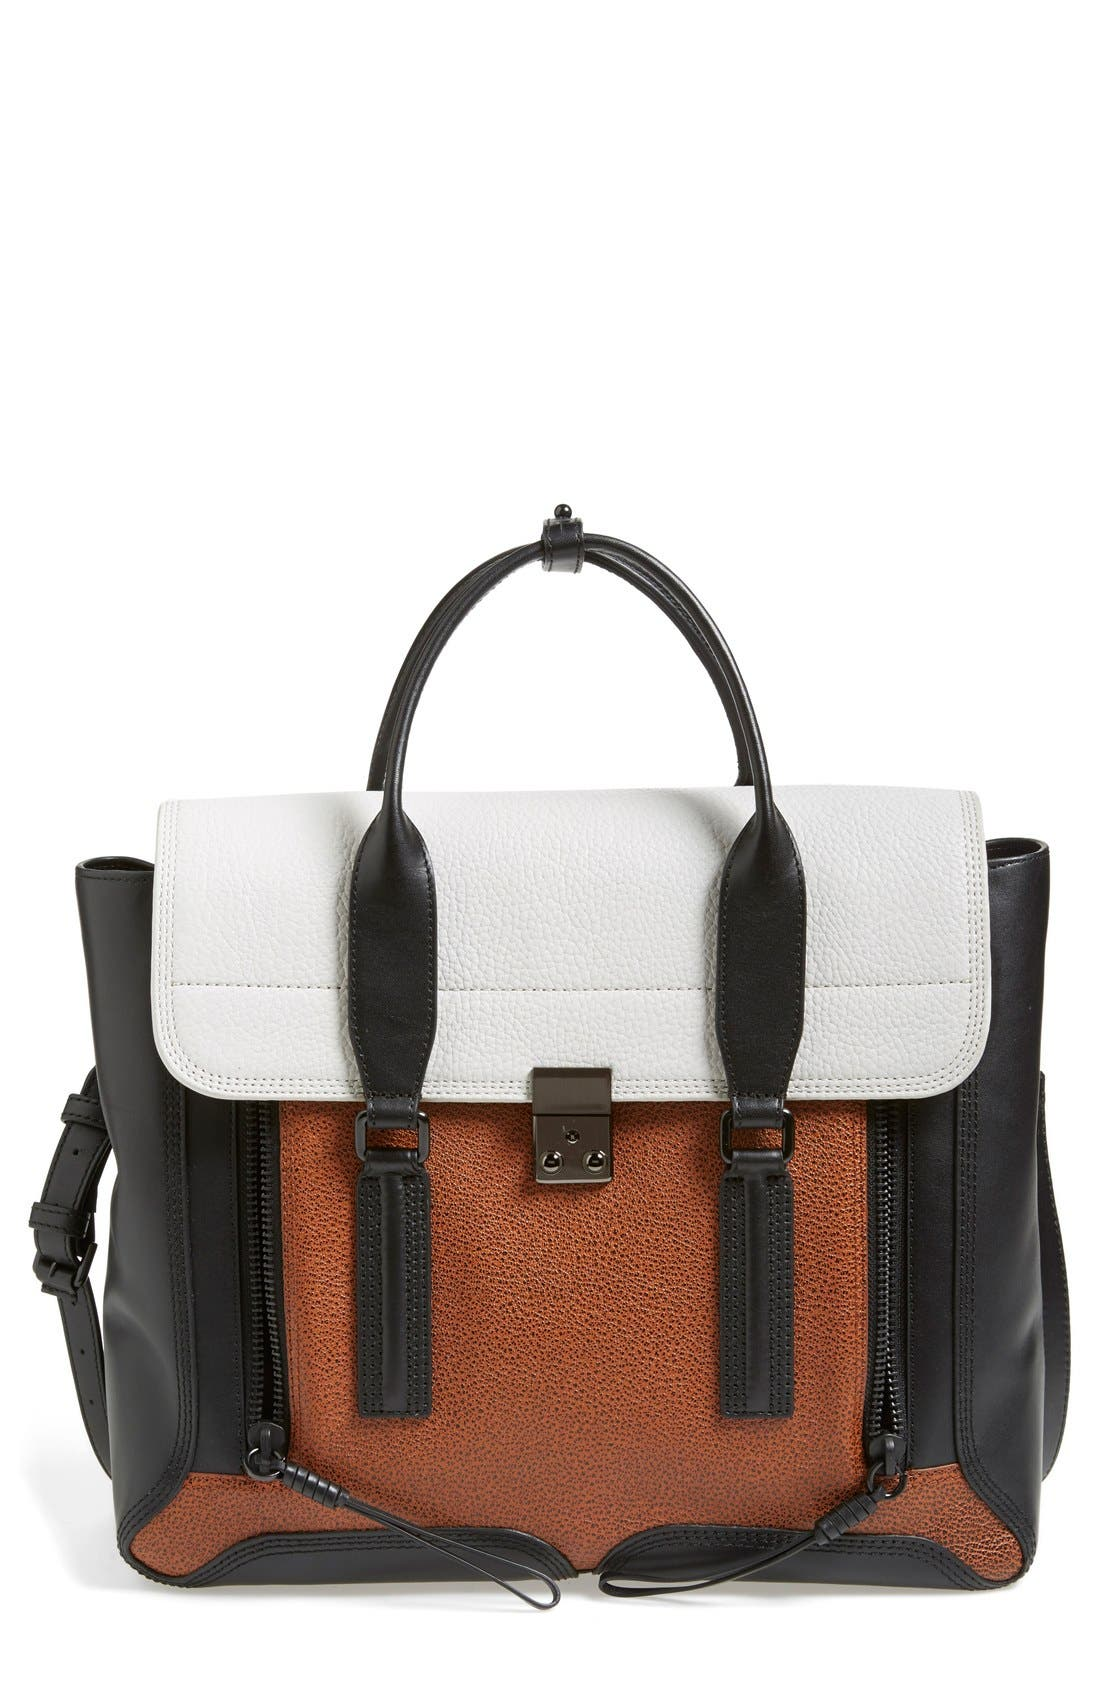 Main Image - 3.1 Phillip Lim 'Large Pashli' Leather Satchel